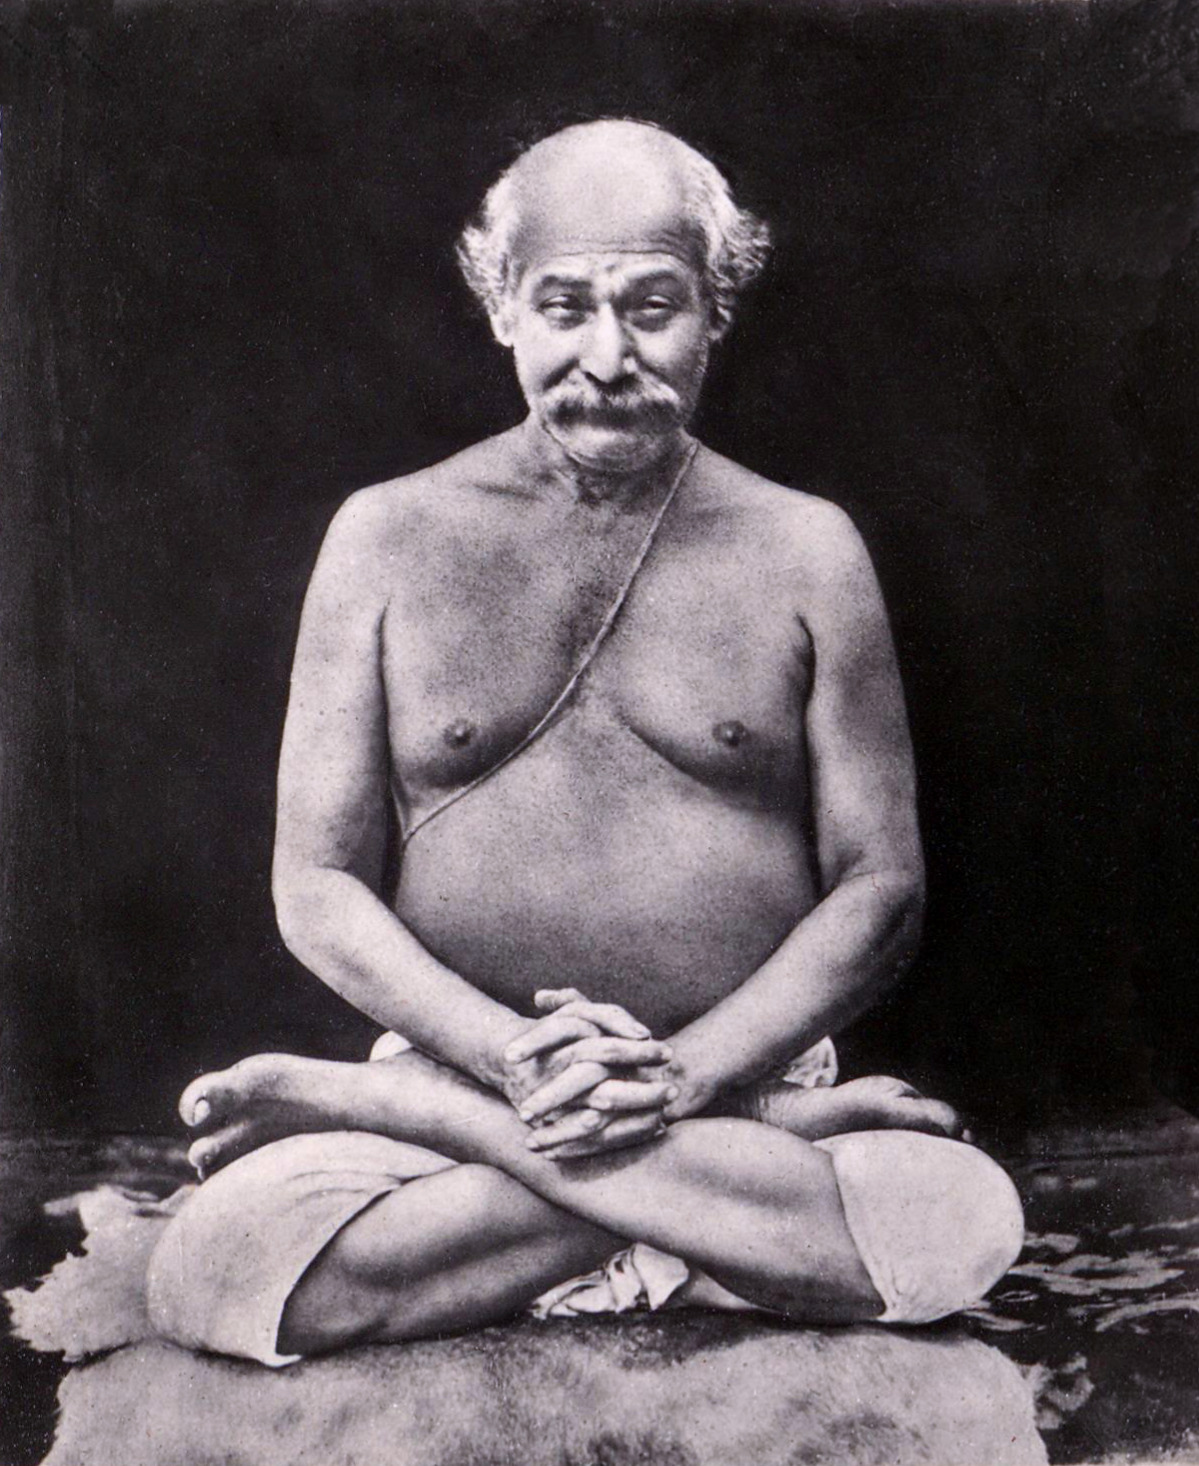 Lahiri Mahasaya in Lotus position